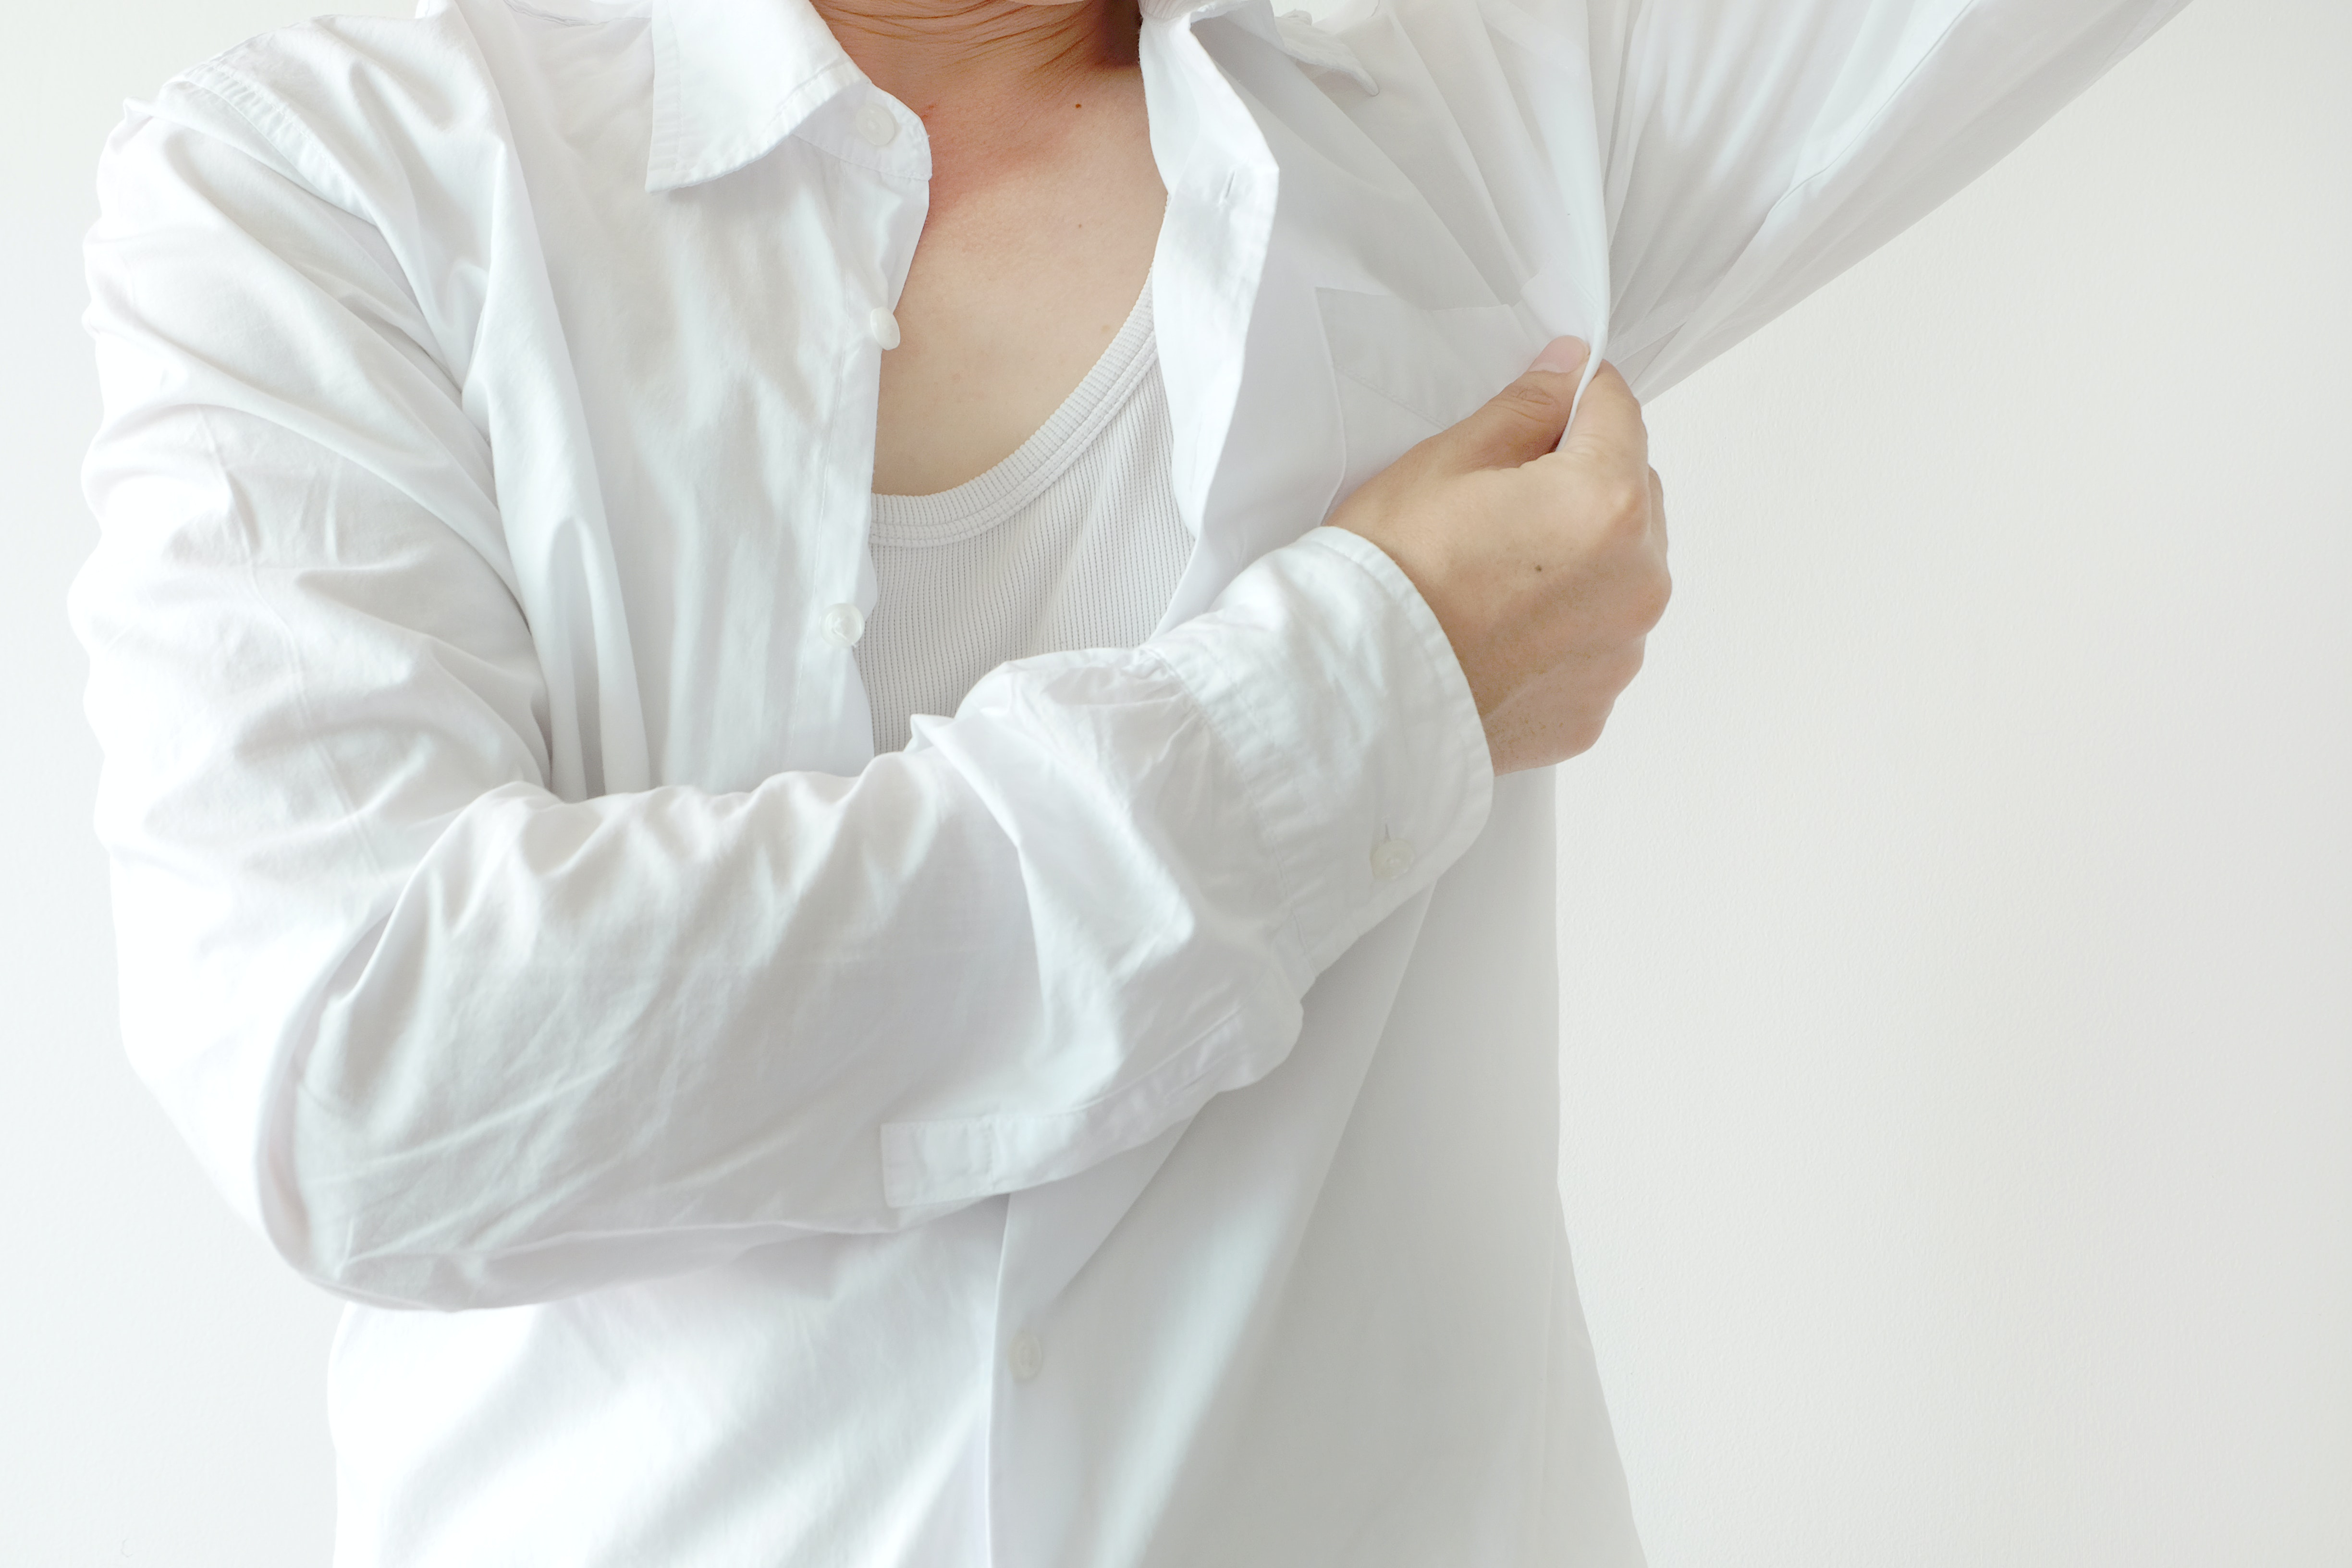 An image depicting a person suffering from pain in one armpit symptoms